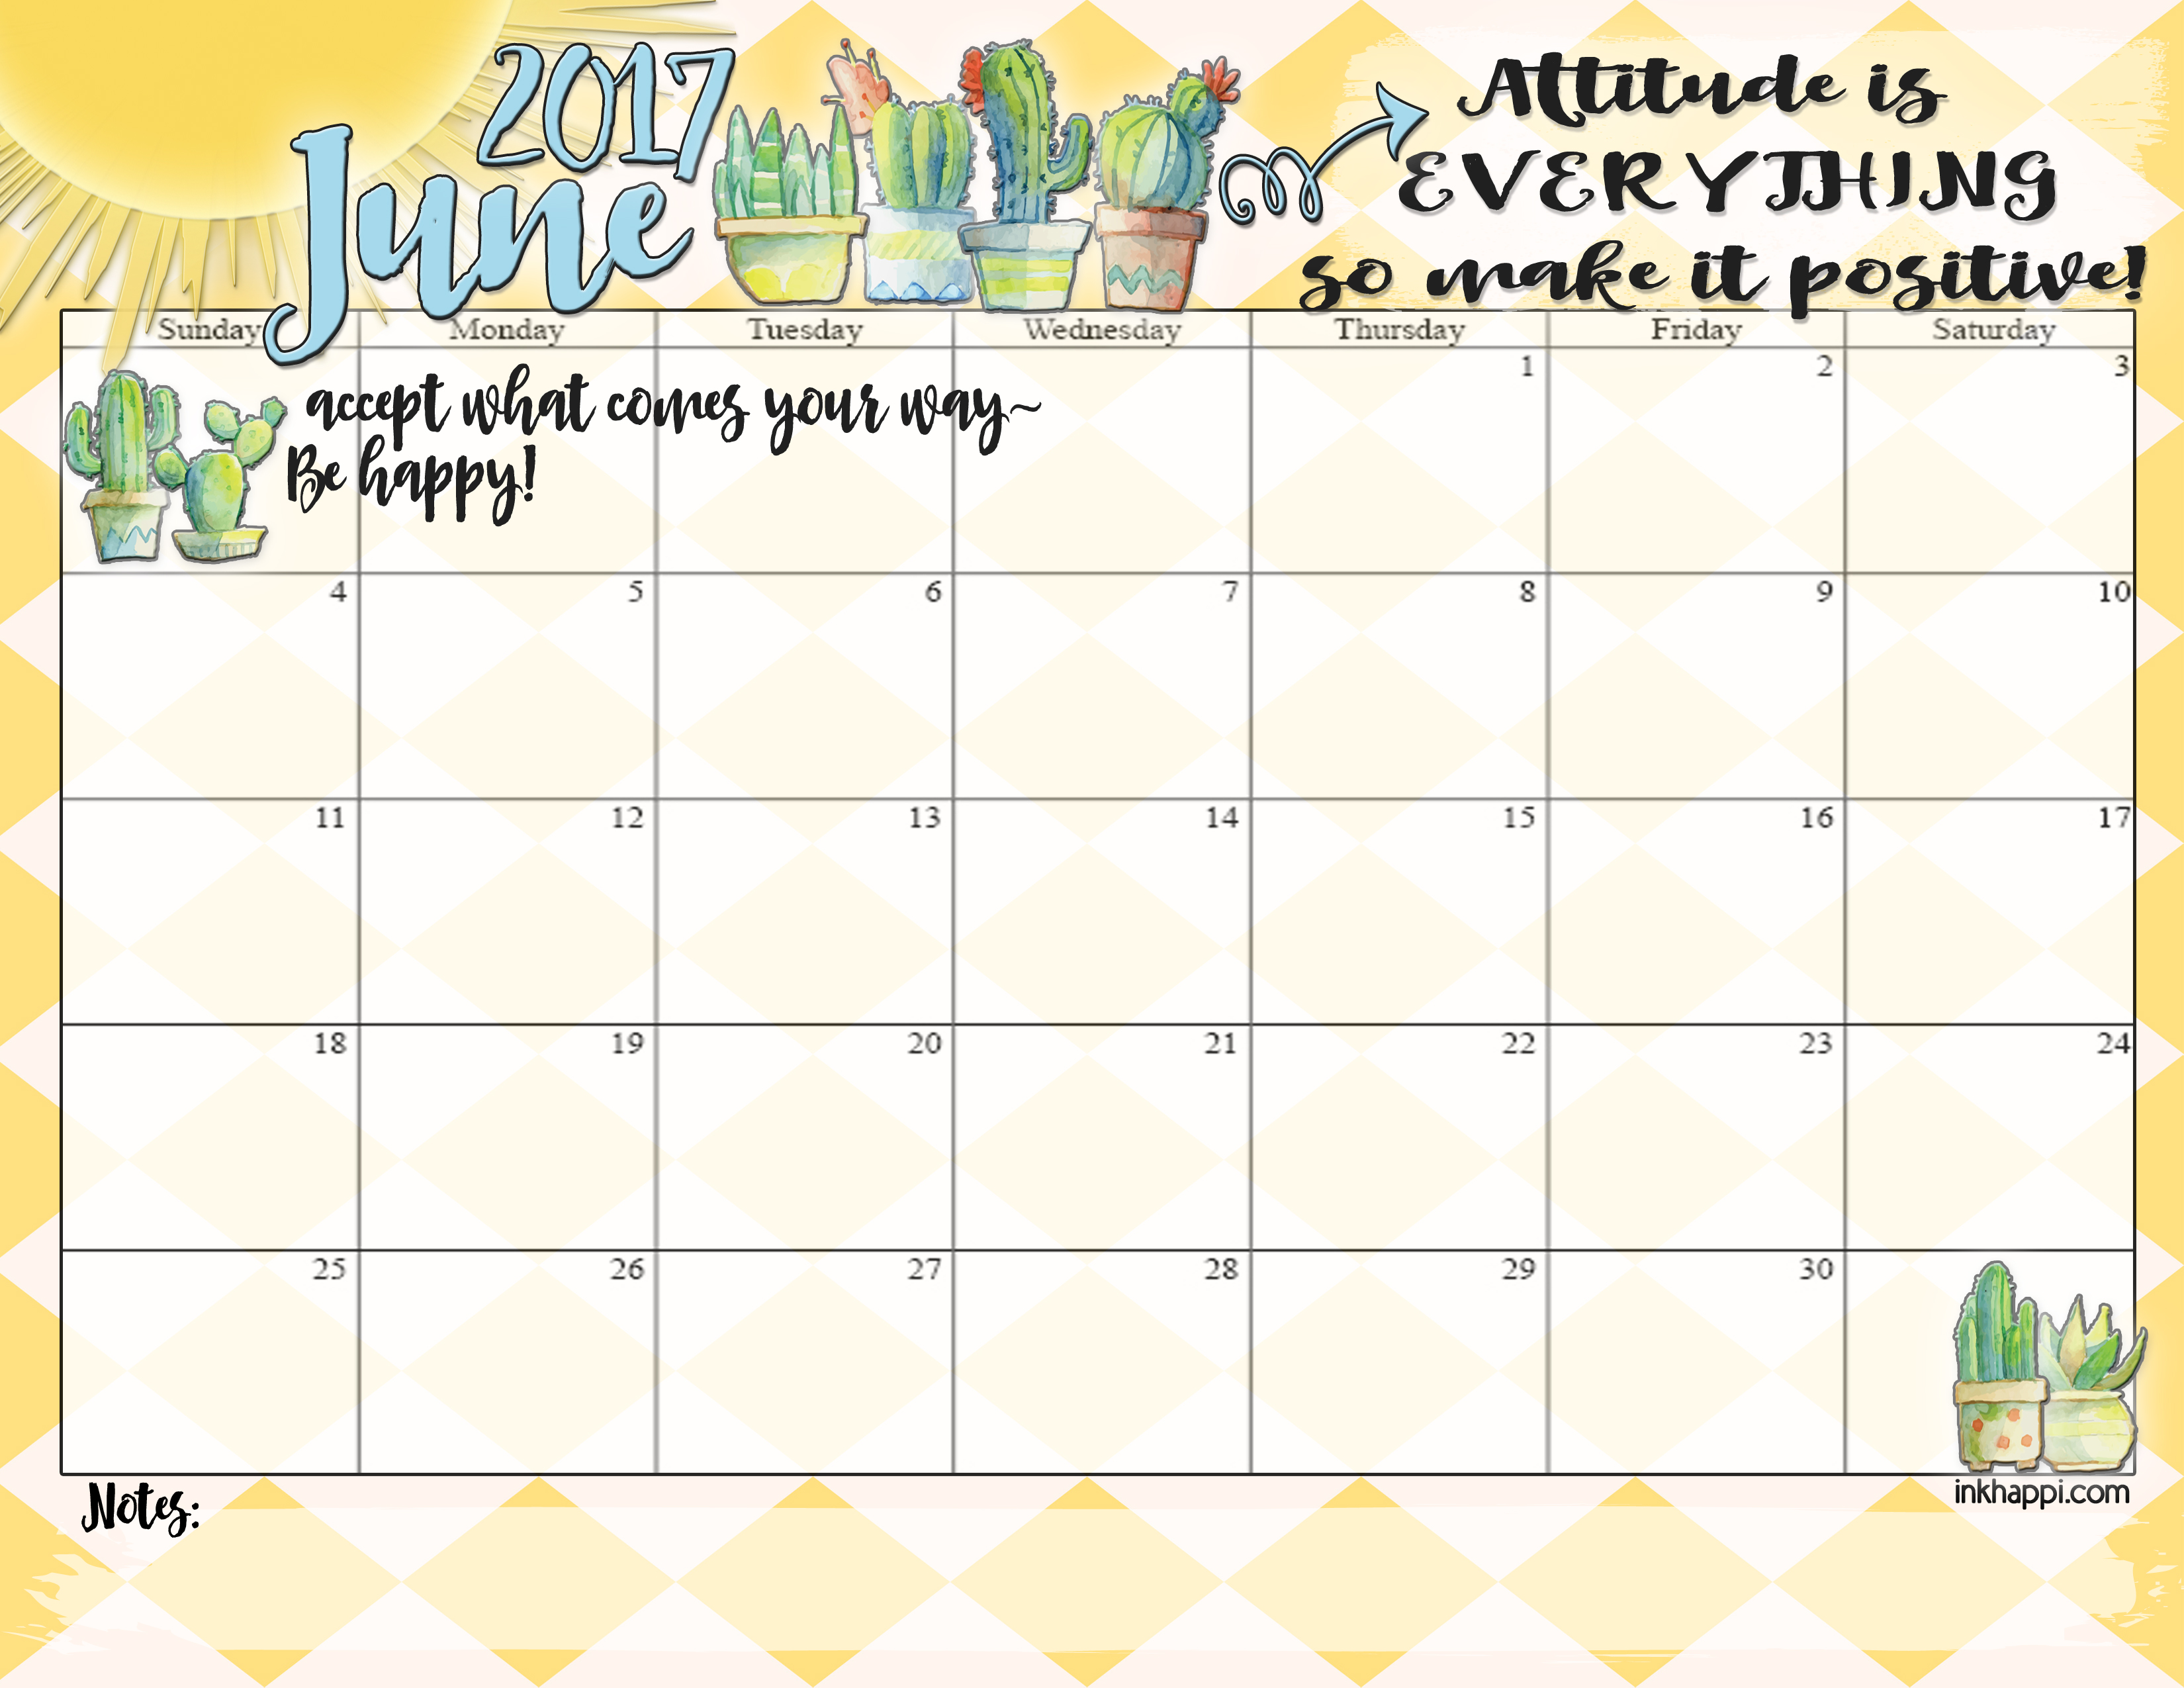 June 2017 calendar and print from inkhappi.